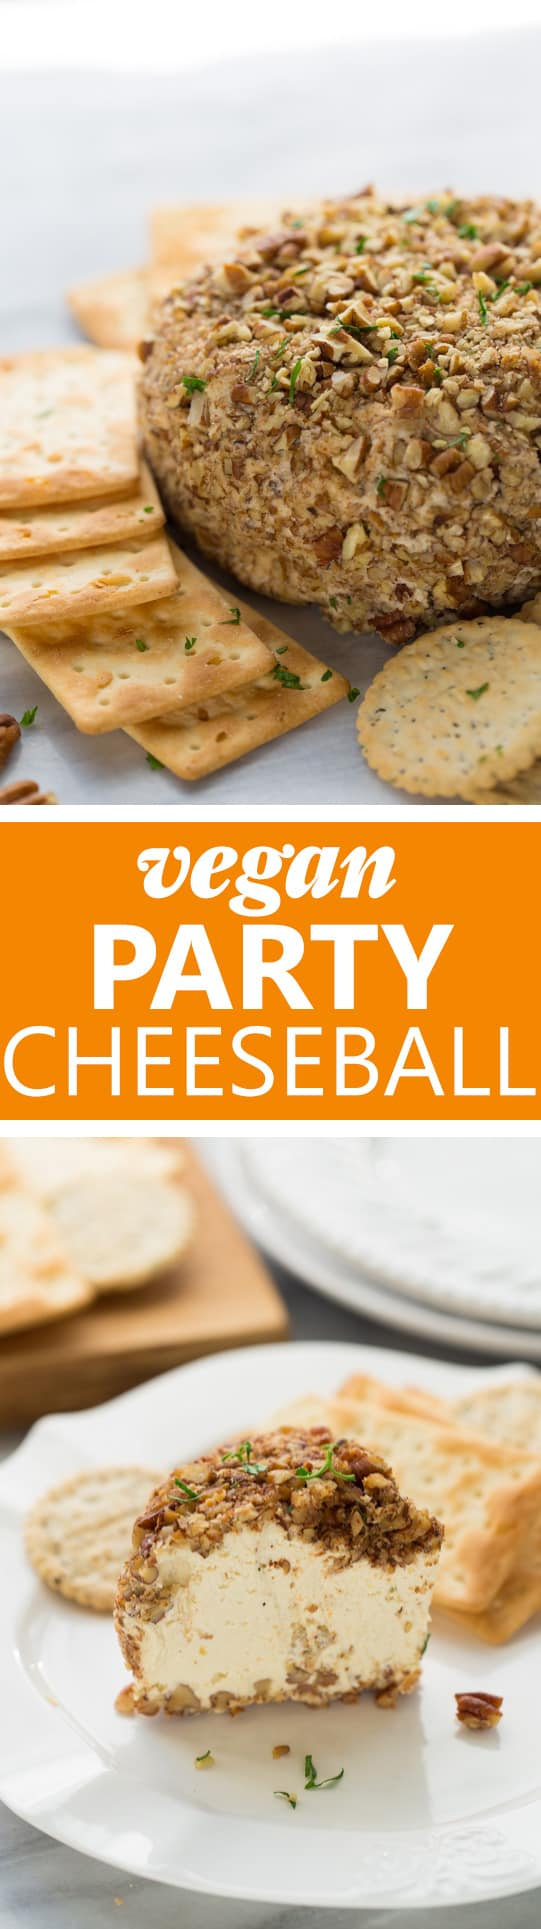 Vegan Party Cheeseball! So flavorful and crowd-pleasing you'd never guess it's vegan!